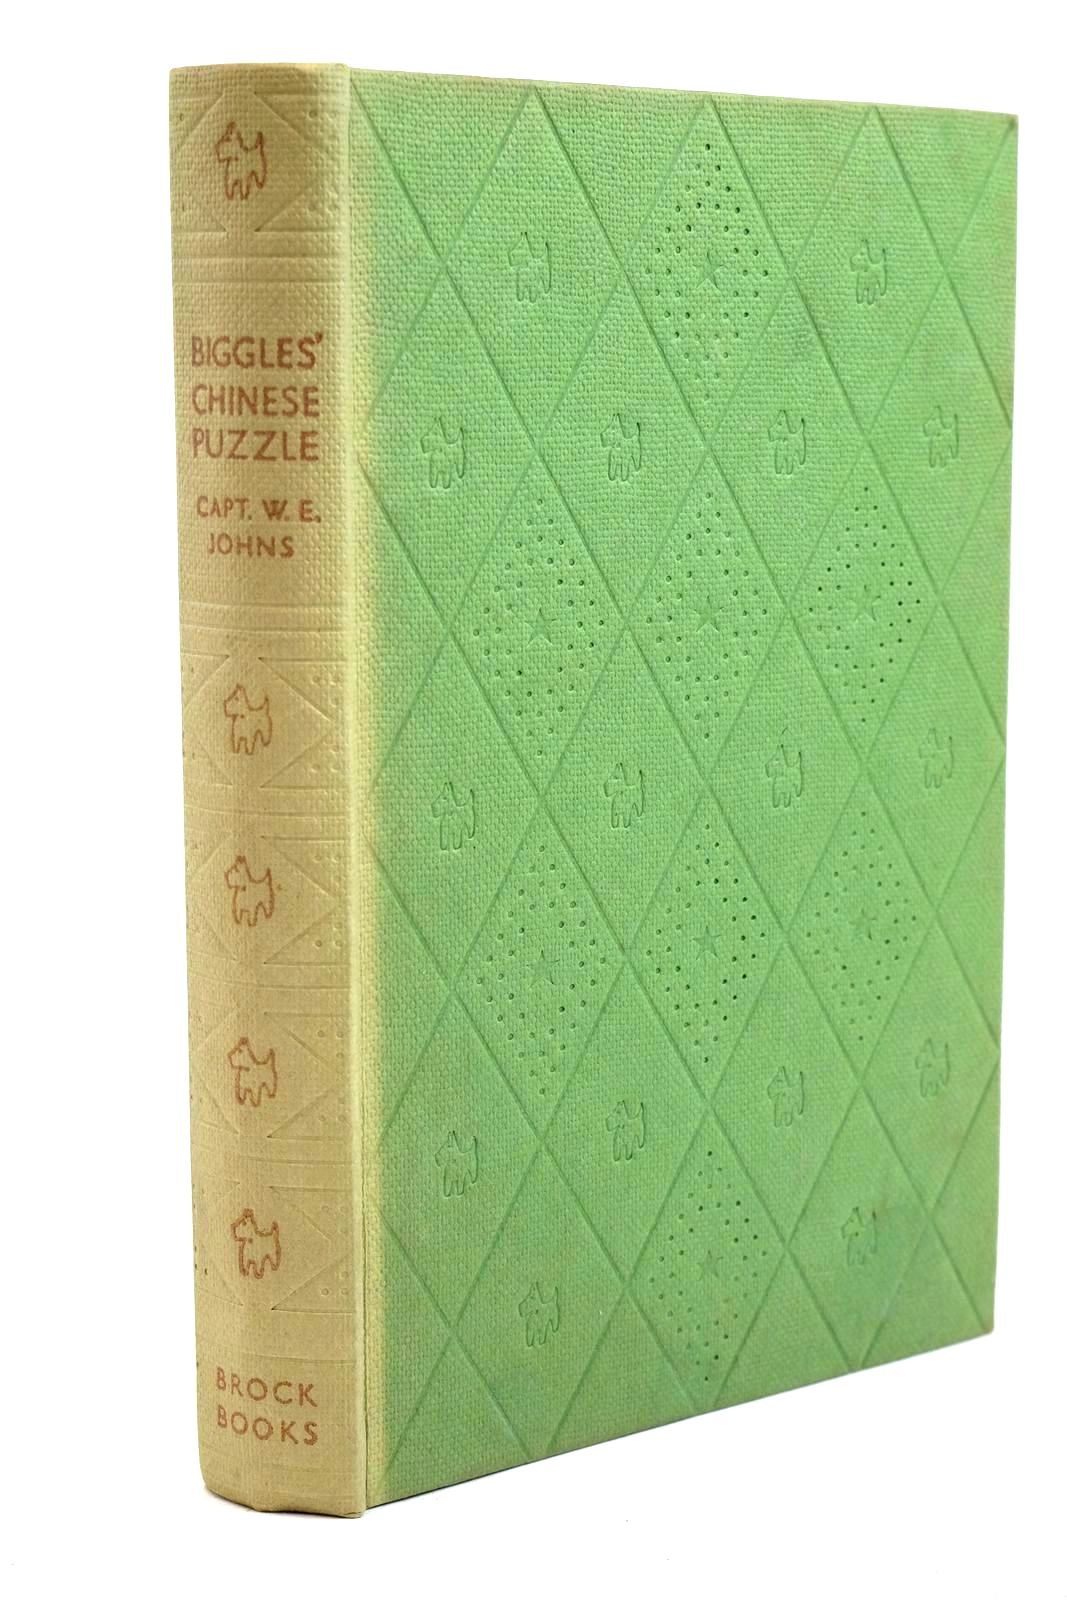 Photo of BIGGLES' CHINESE PUZZLE- Stock Number: 1320706